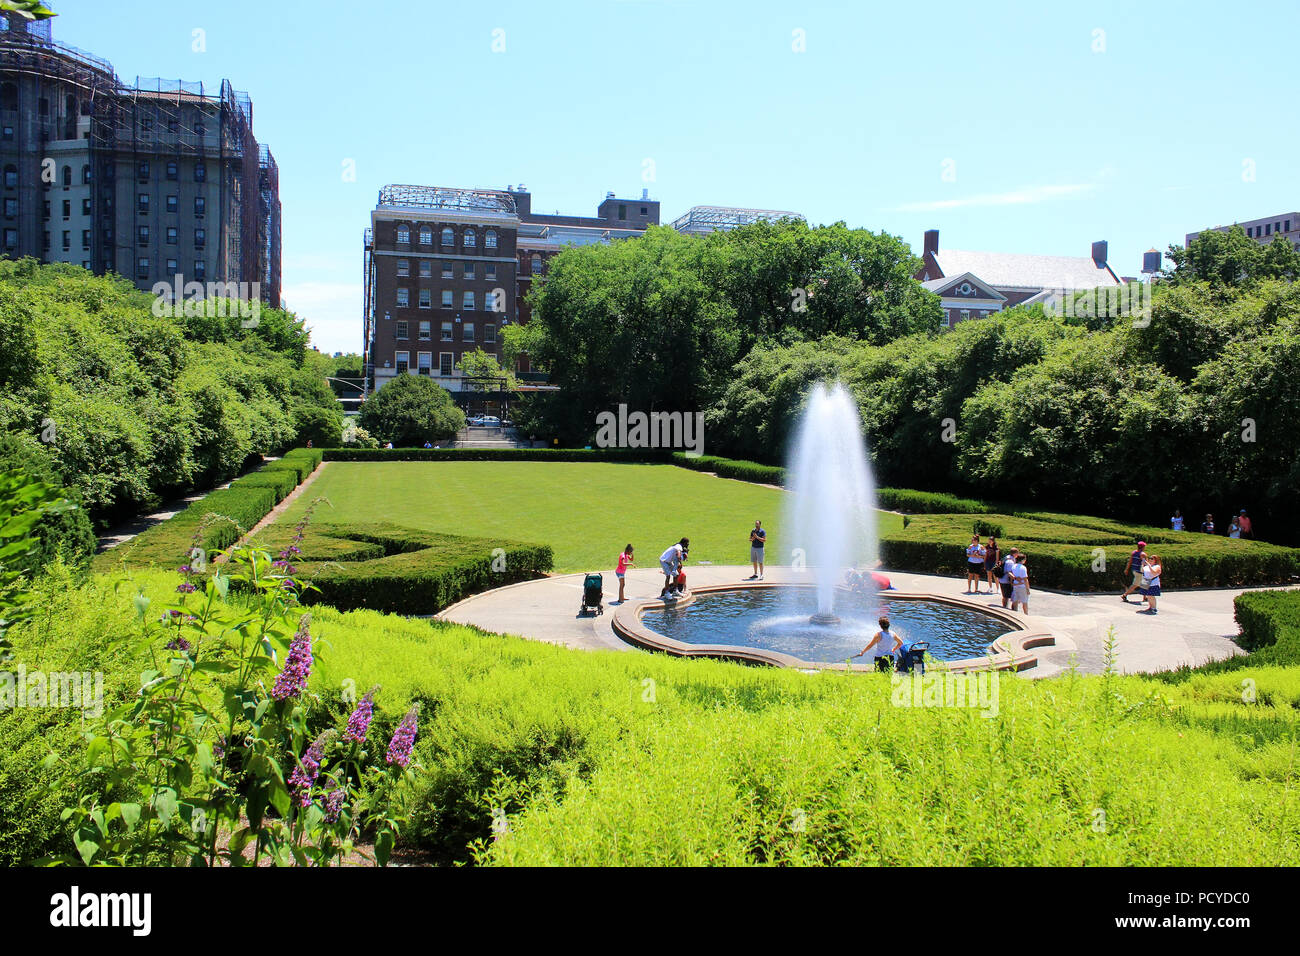 Beautiful Conservatory Garden is the only formal garden in Central Park, Manhattan on JULY 4th, 2017 in New York, USA. (Photo by Wojciech Migda) Stock Photo